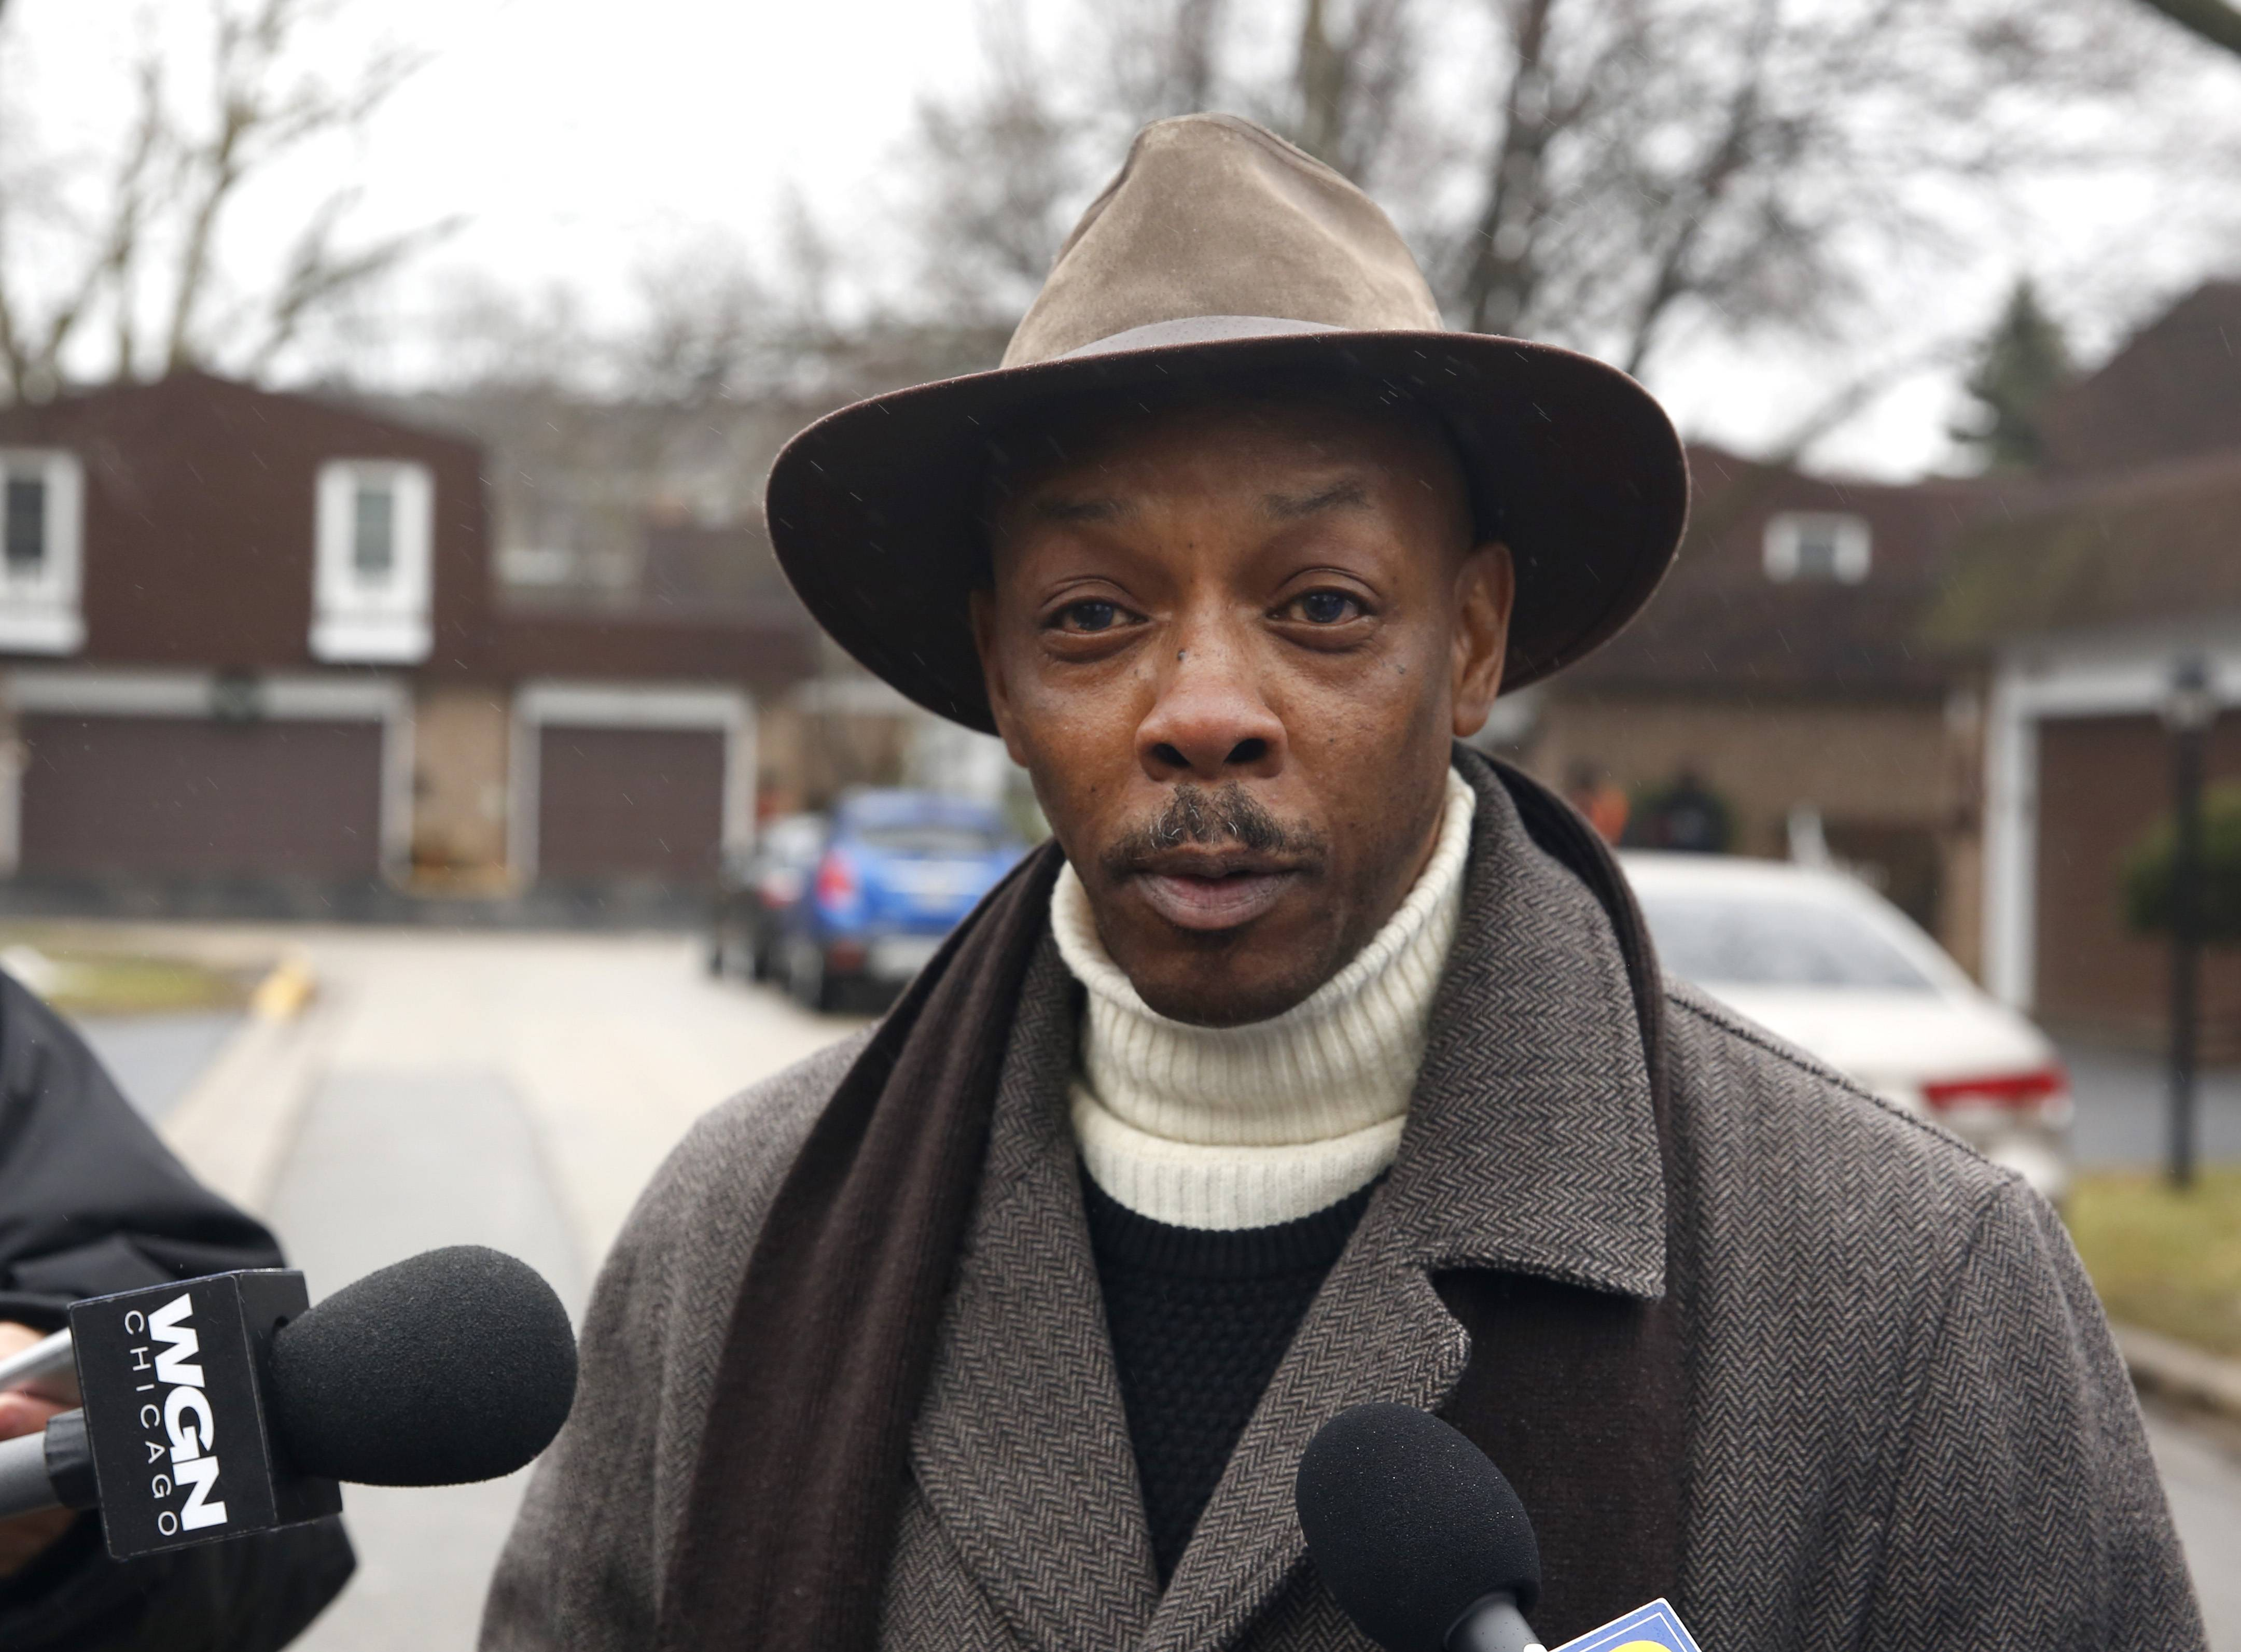 The Rev. Alfonzo Singletary of the Tabernacle of Hope Church of God in Christ in Chicago, and Trevon Johnson's uncle, says the family is at peace as it prepares to bury the 17-year-old but still has many questions about the shooting that took his life.